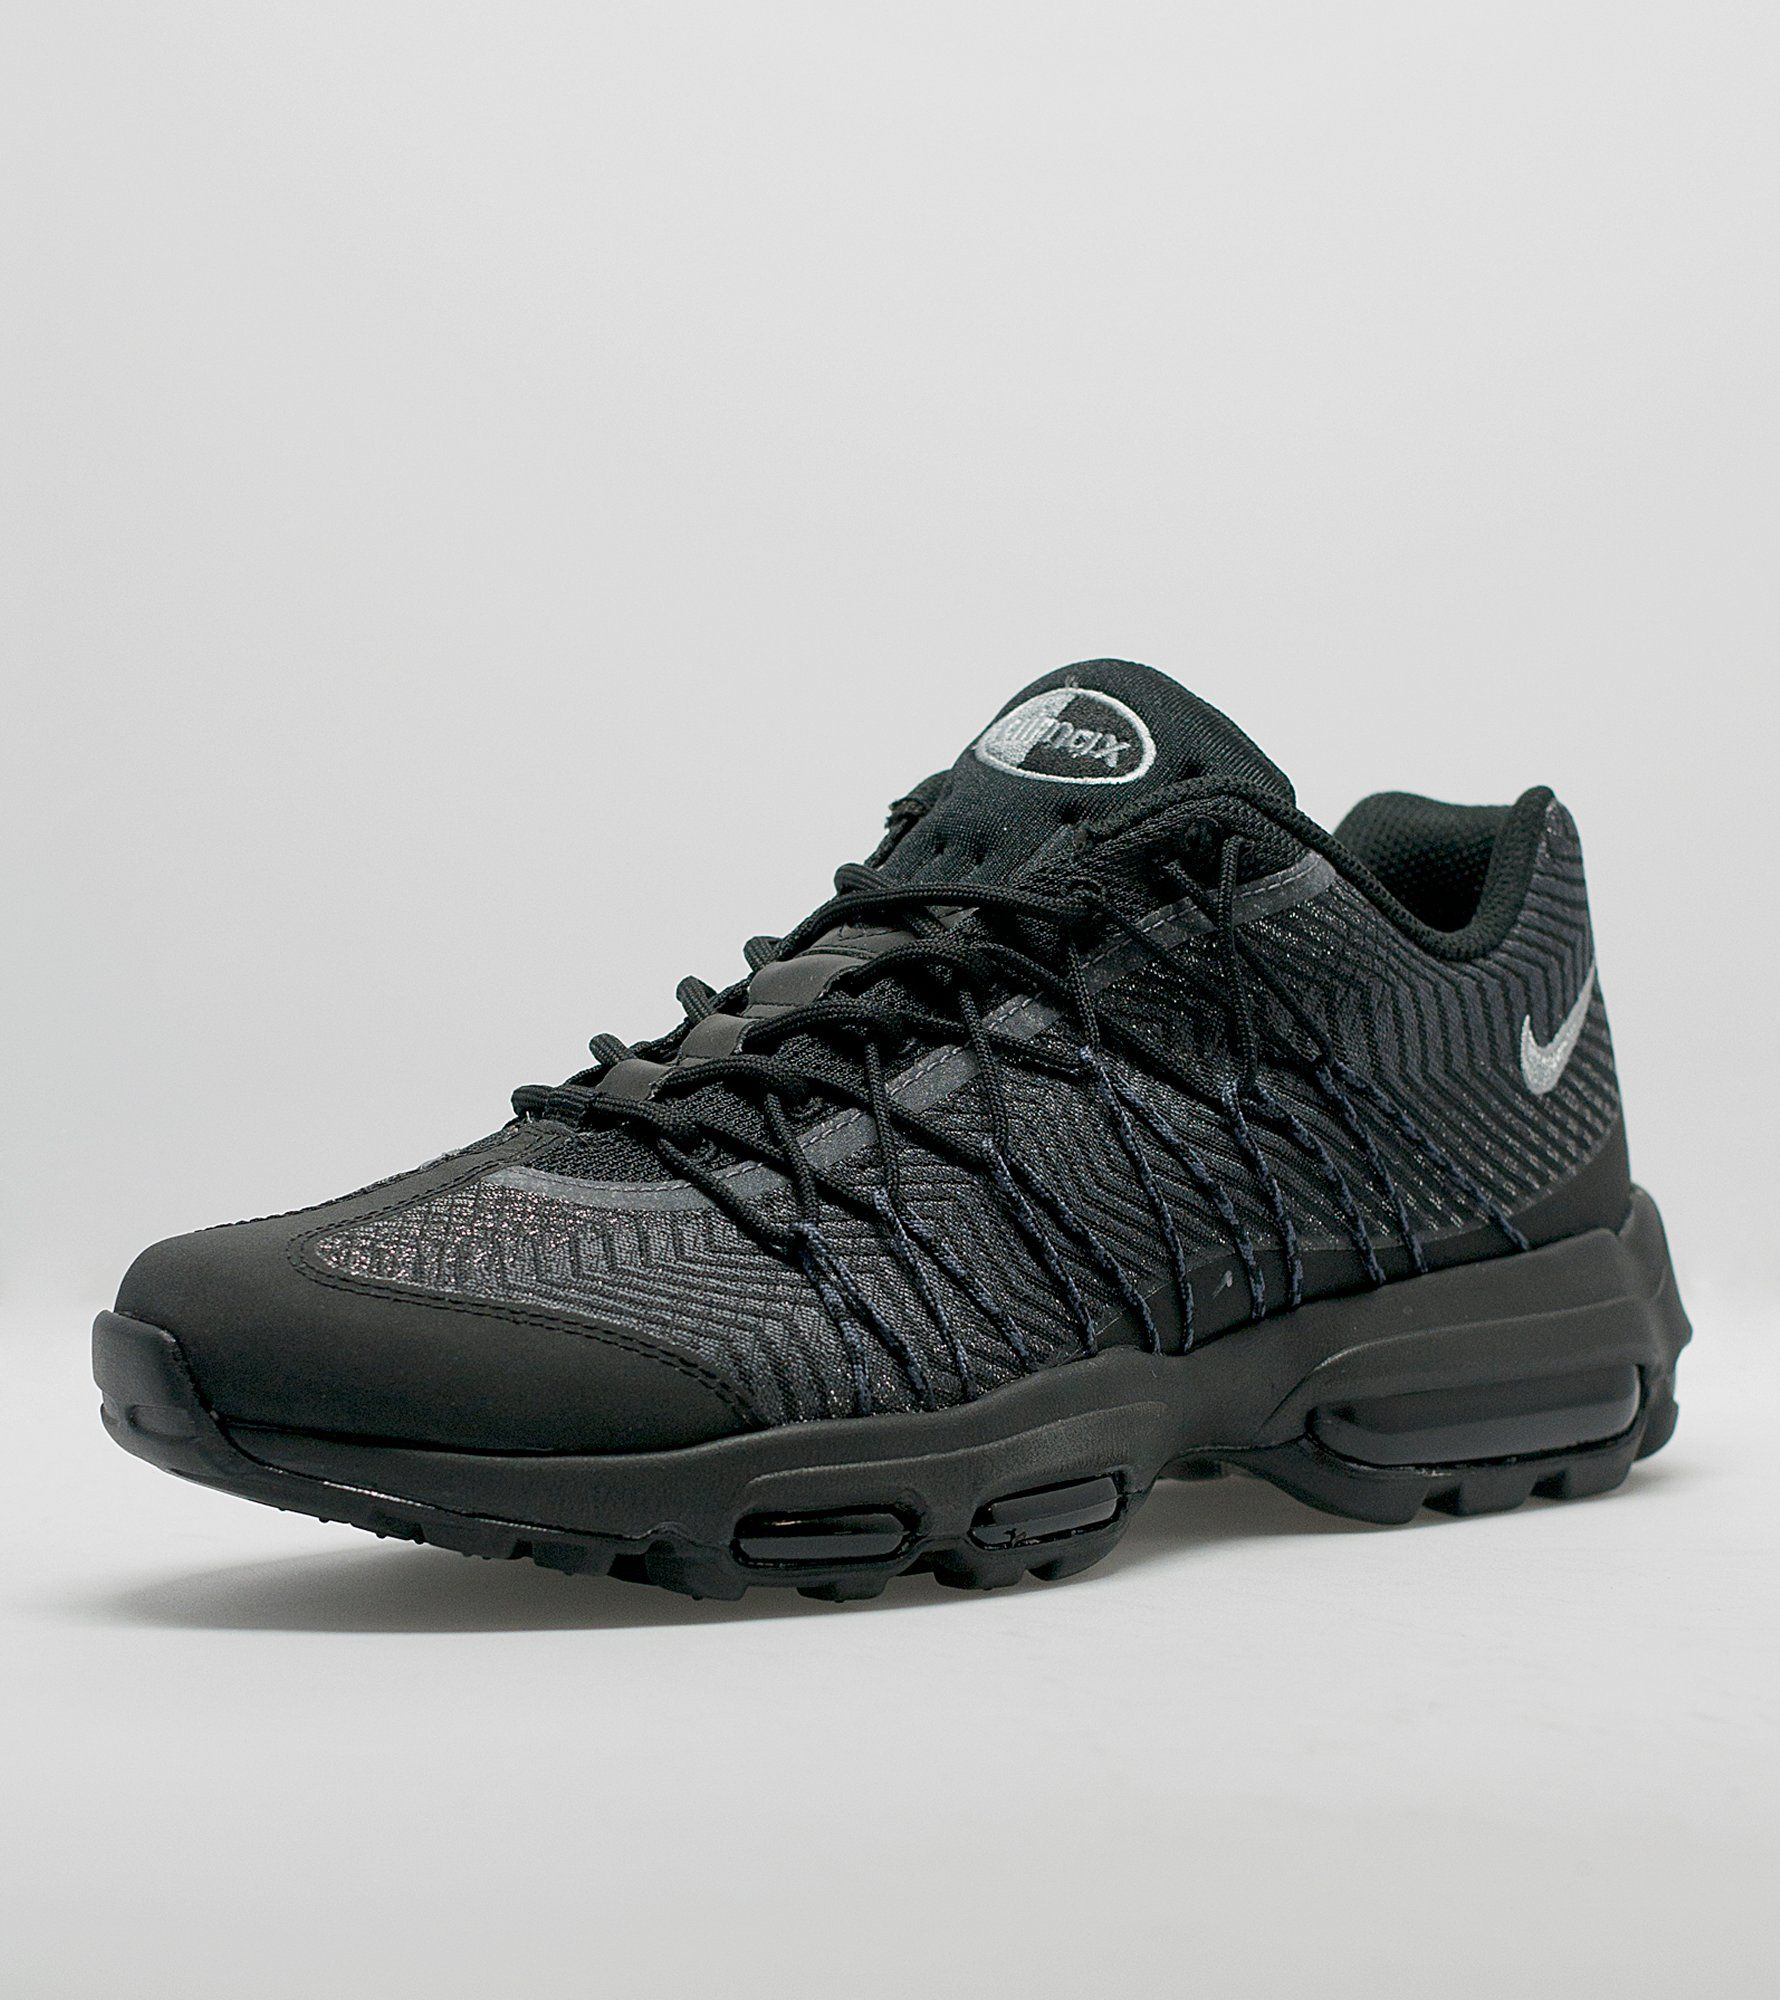 separation shoes 7d78d 98497 Nike Air Max 95 Ultra Jacquard  Size